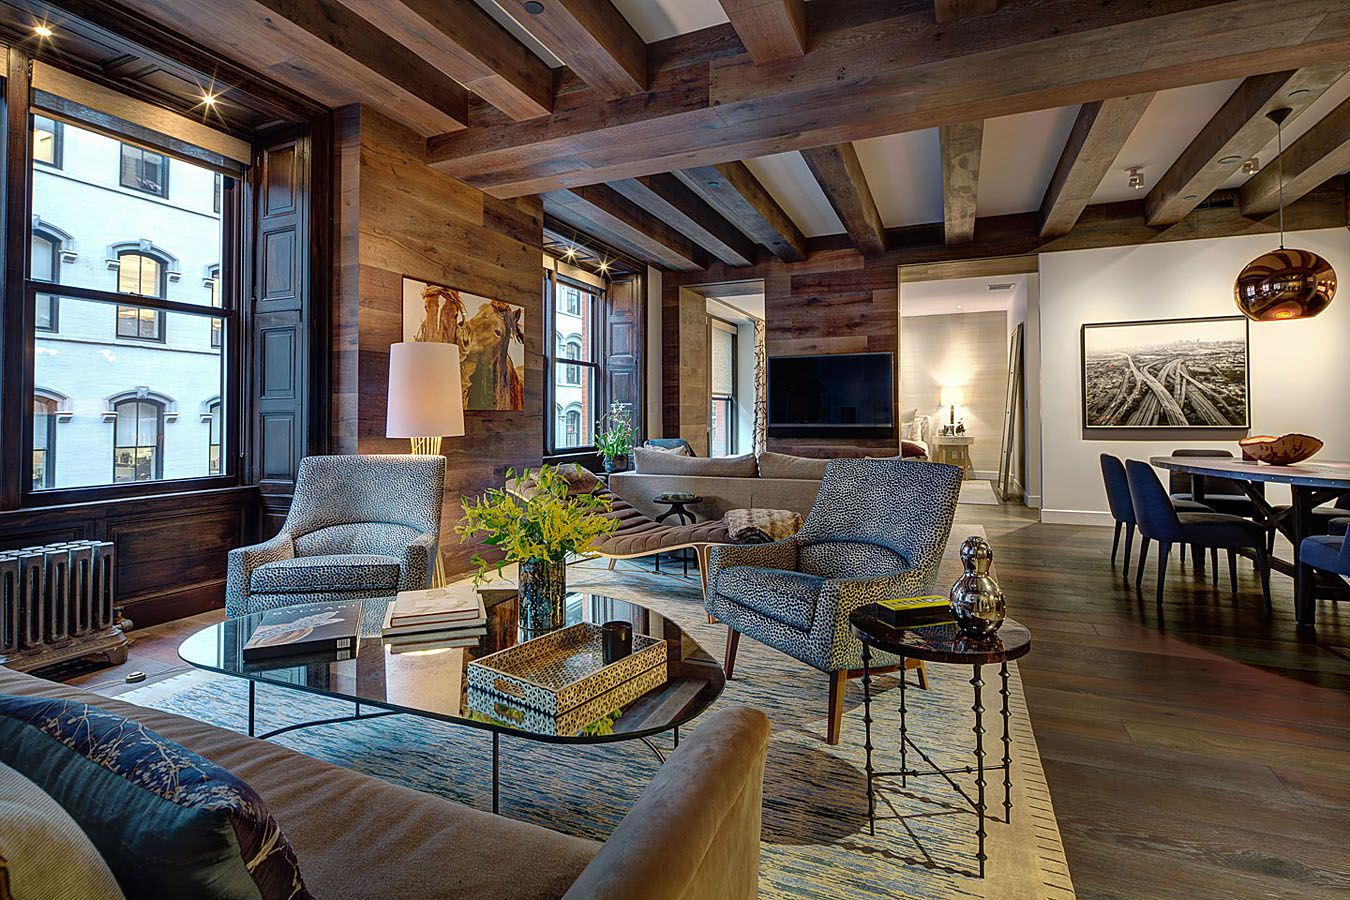 Architectural and interiors photographer new york nyc